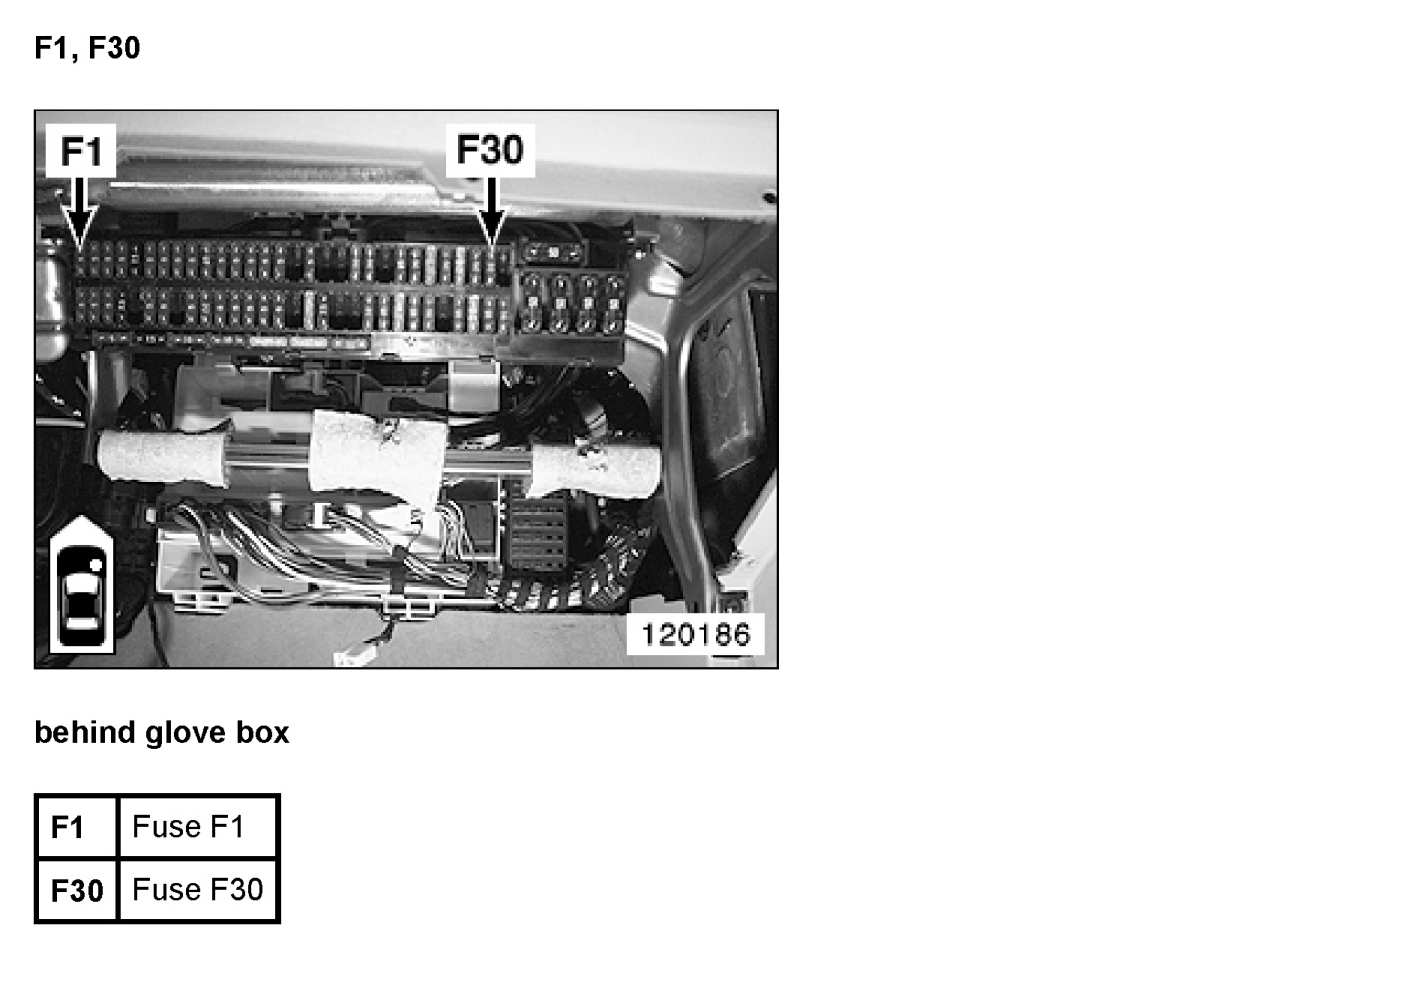 2010 07 30_131622_f13 which and where is the fuse for a bmw x5 2002 model? bmw 2002 fuse box diagram at nearapp.co